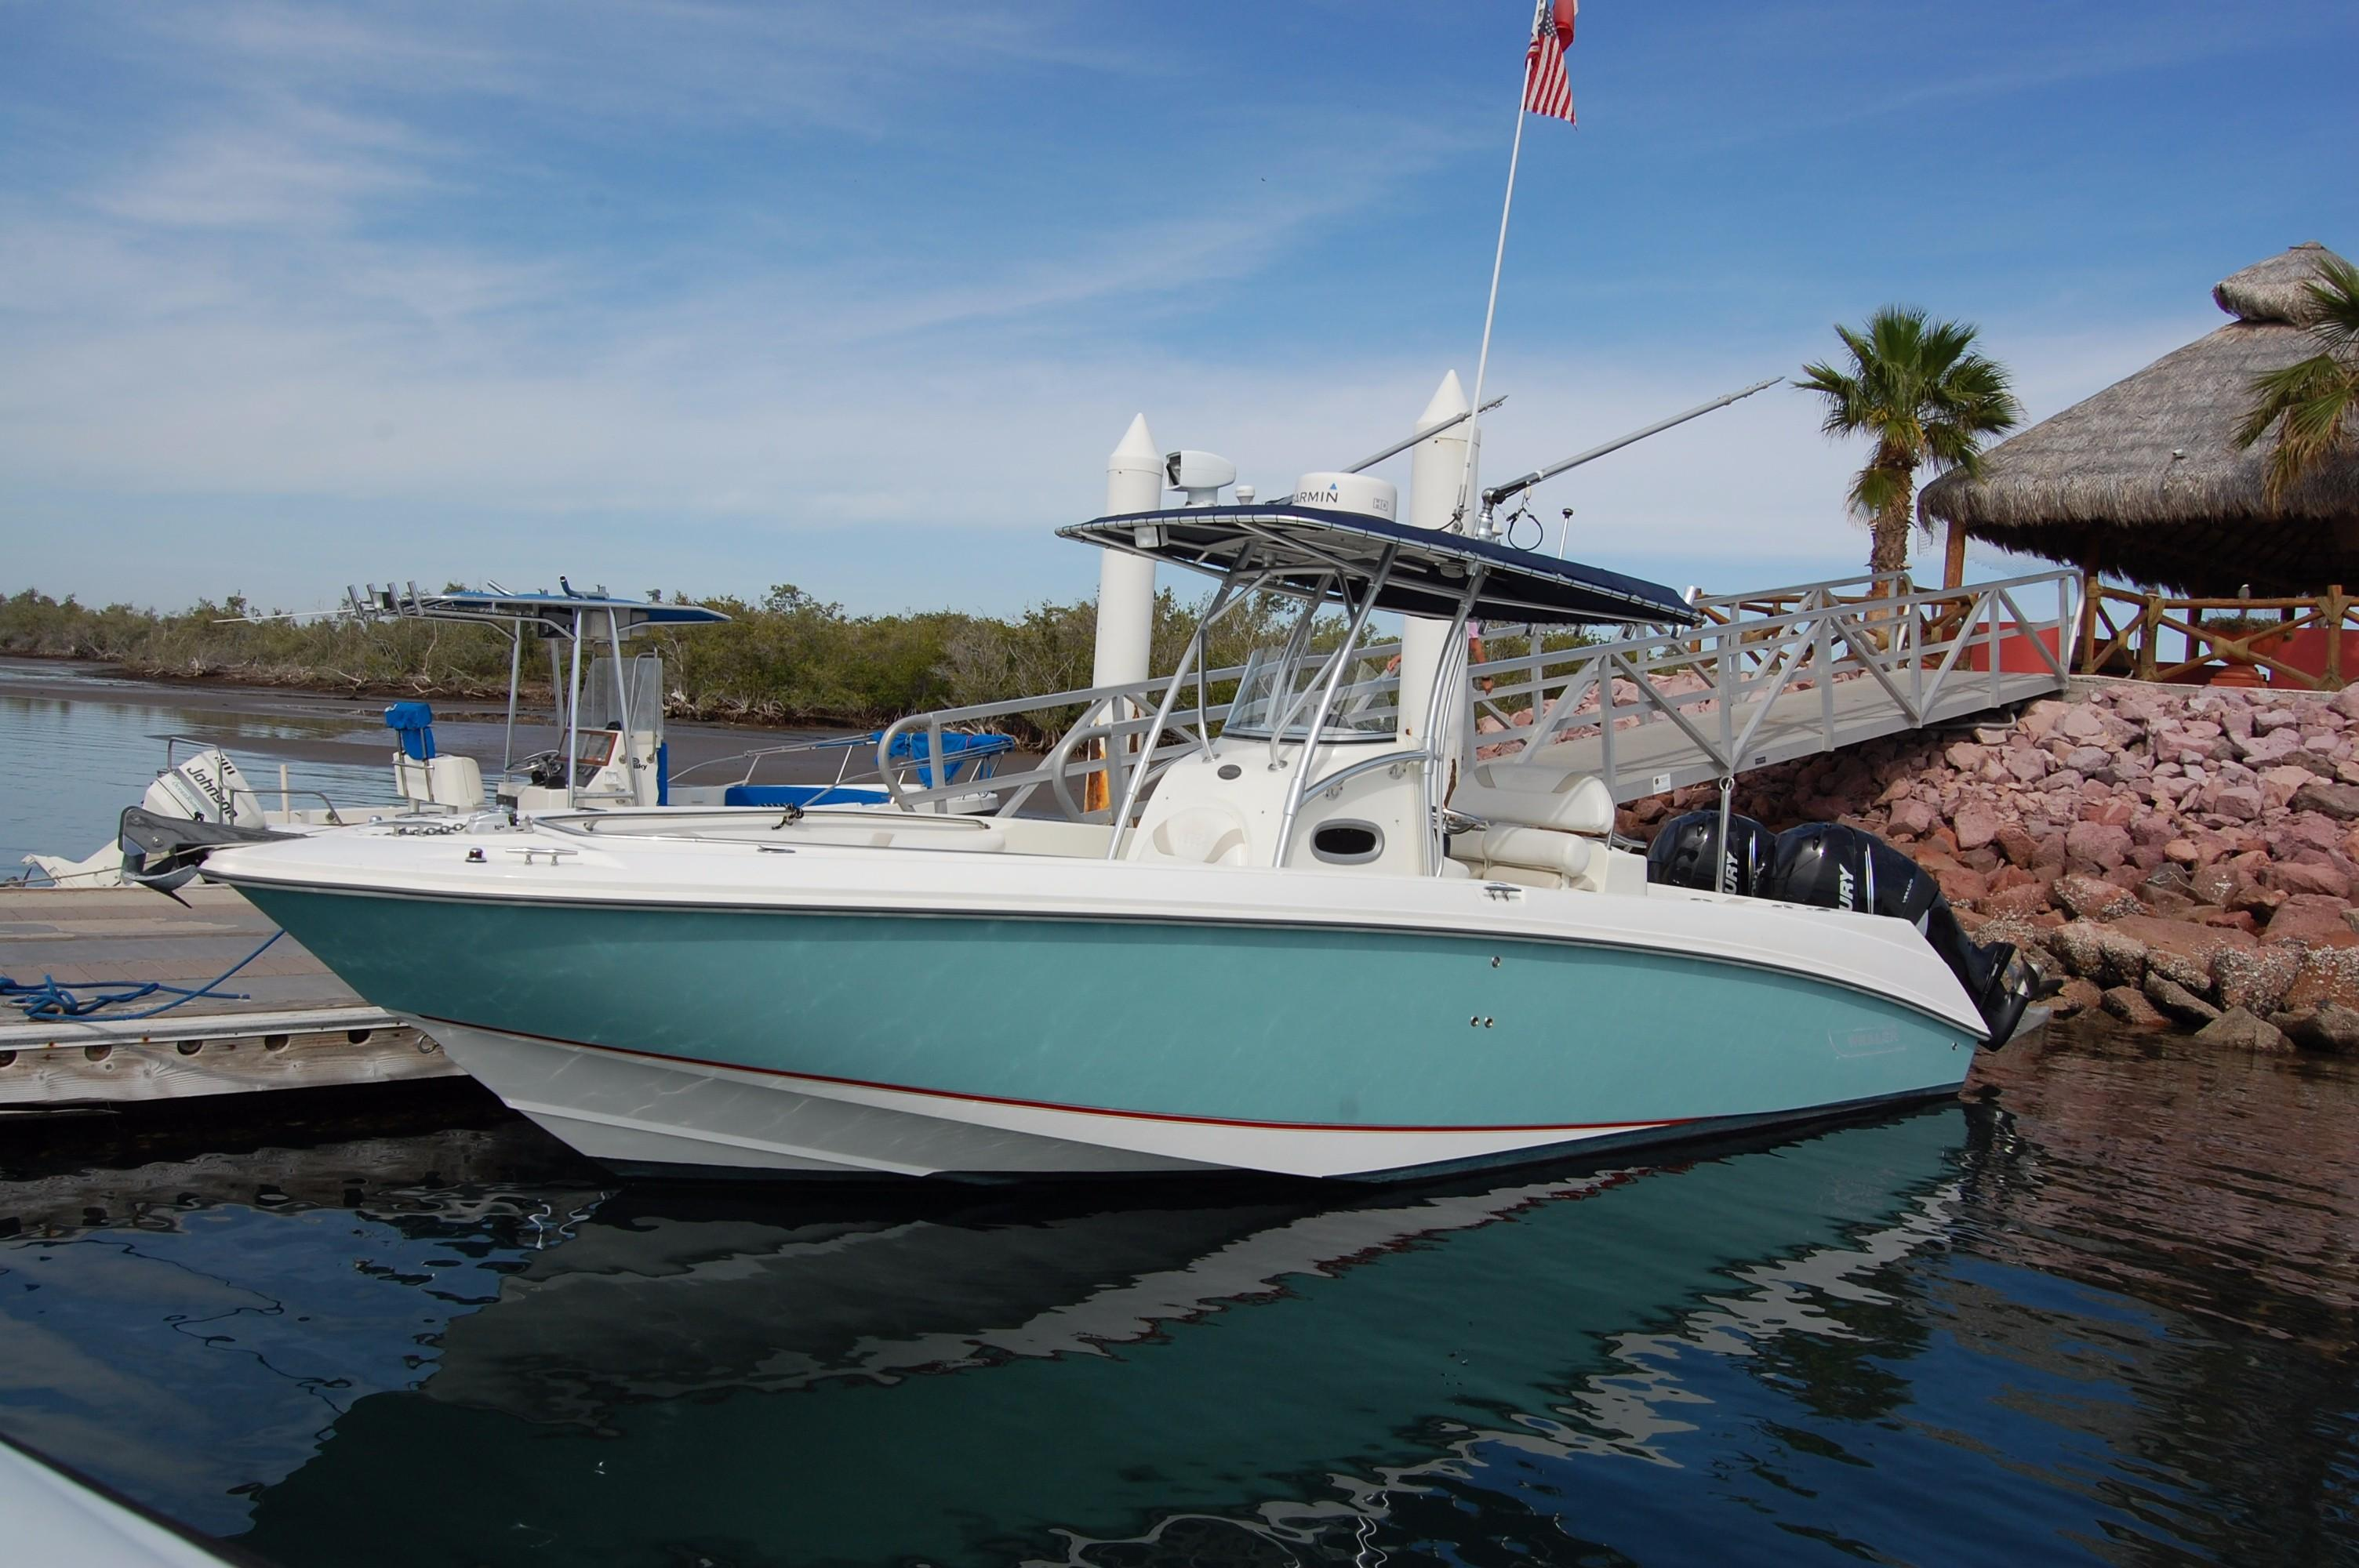 27' Boston Whaler Outrage 270+Boat for sale!